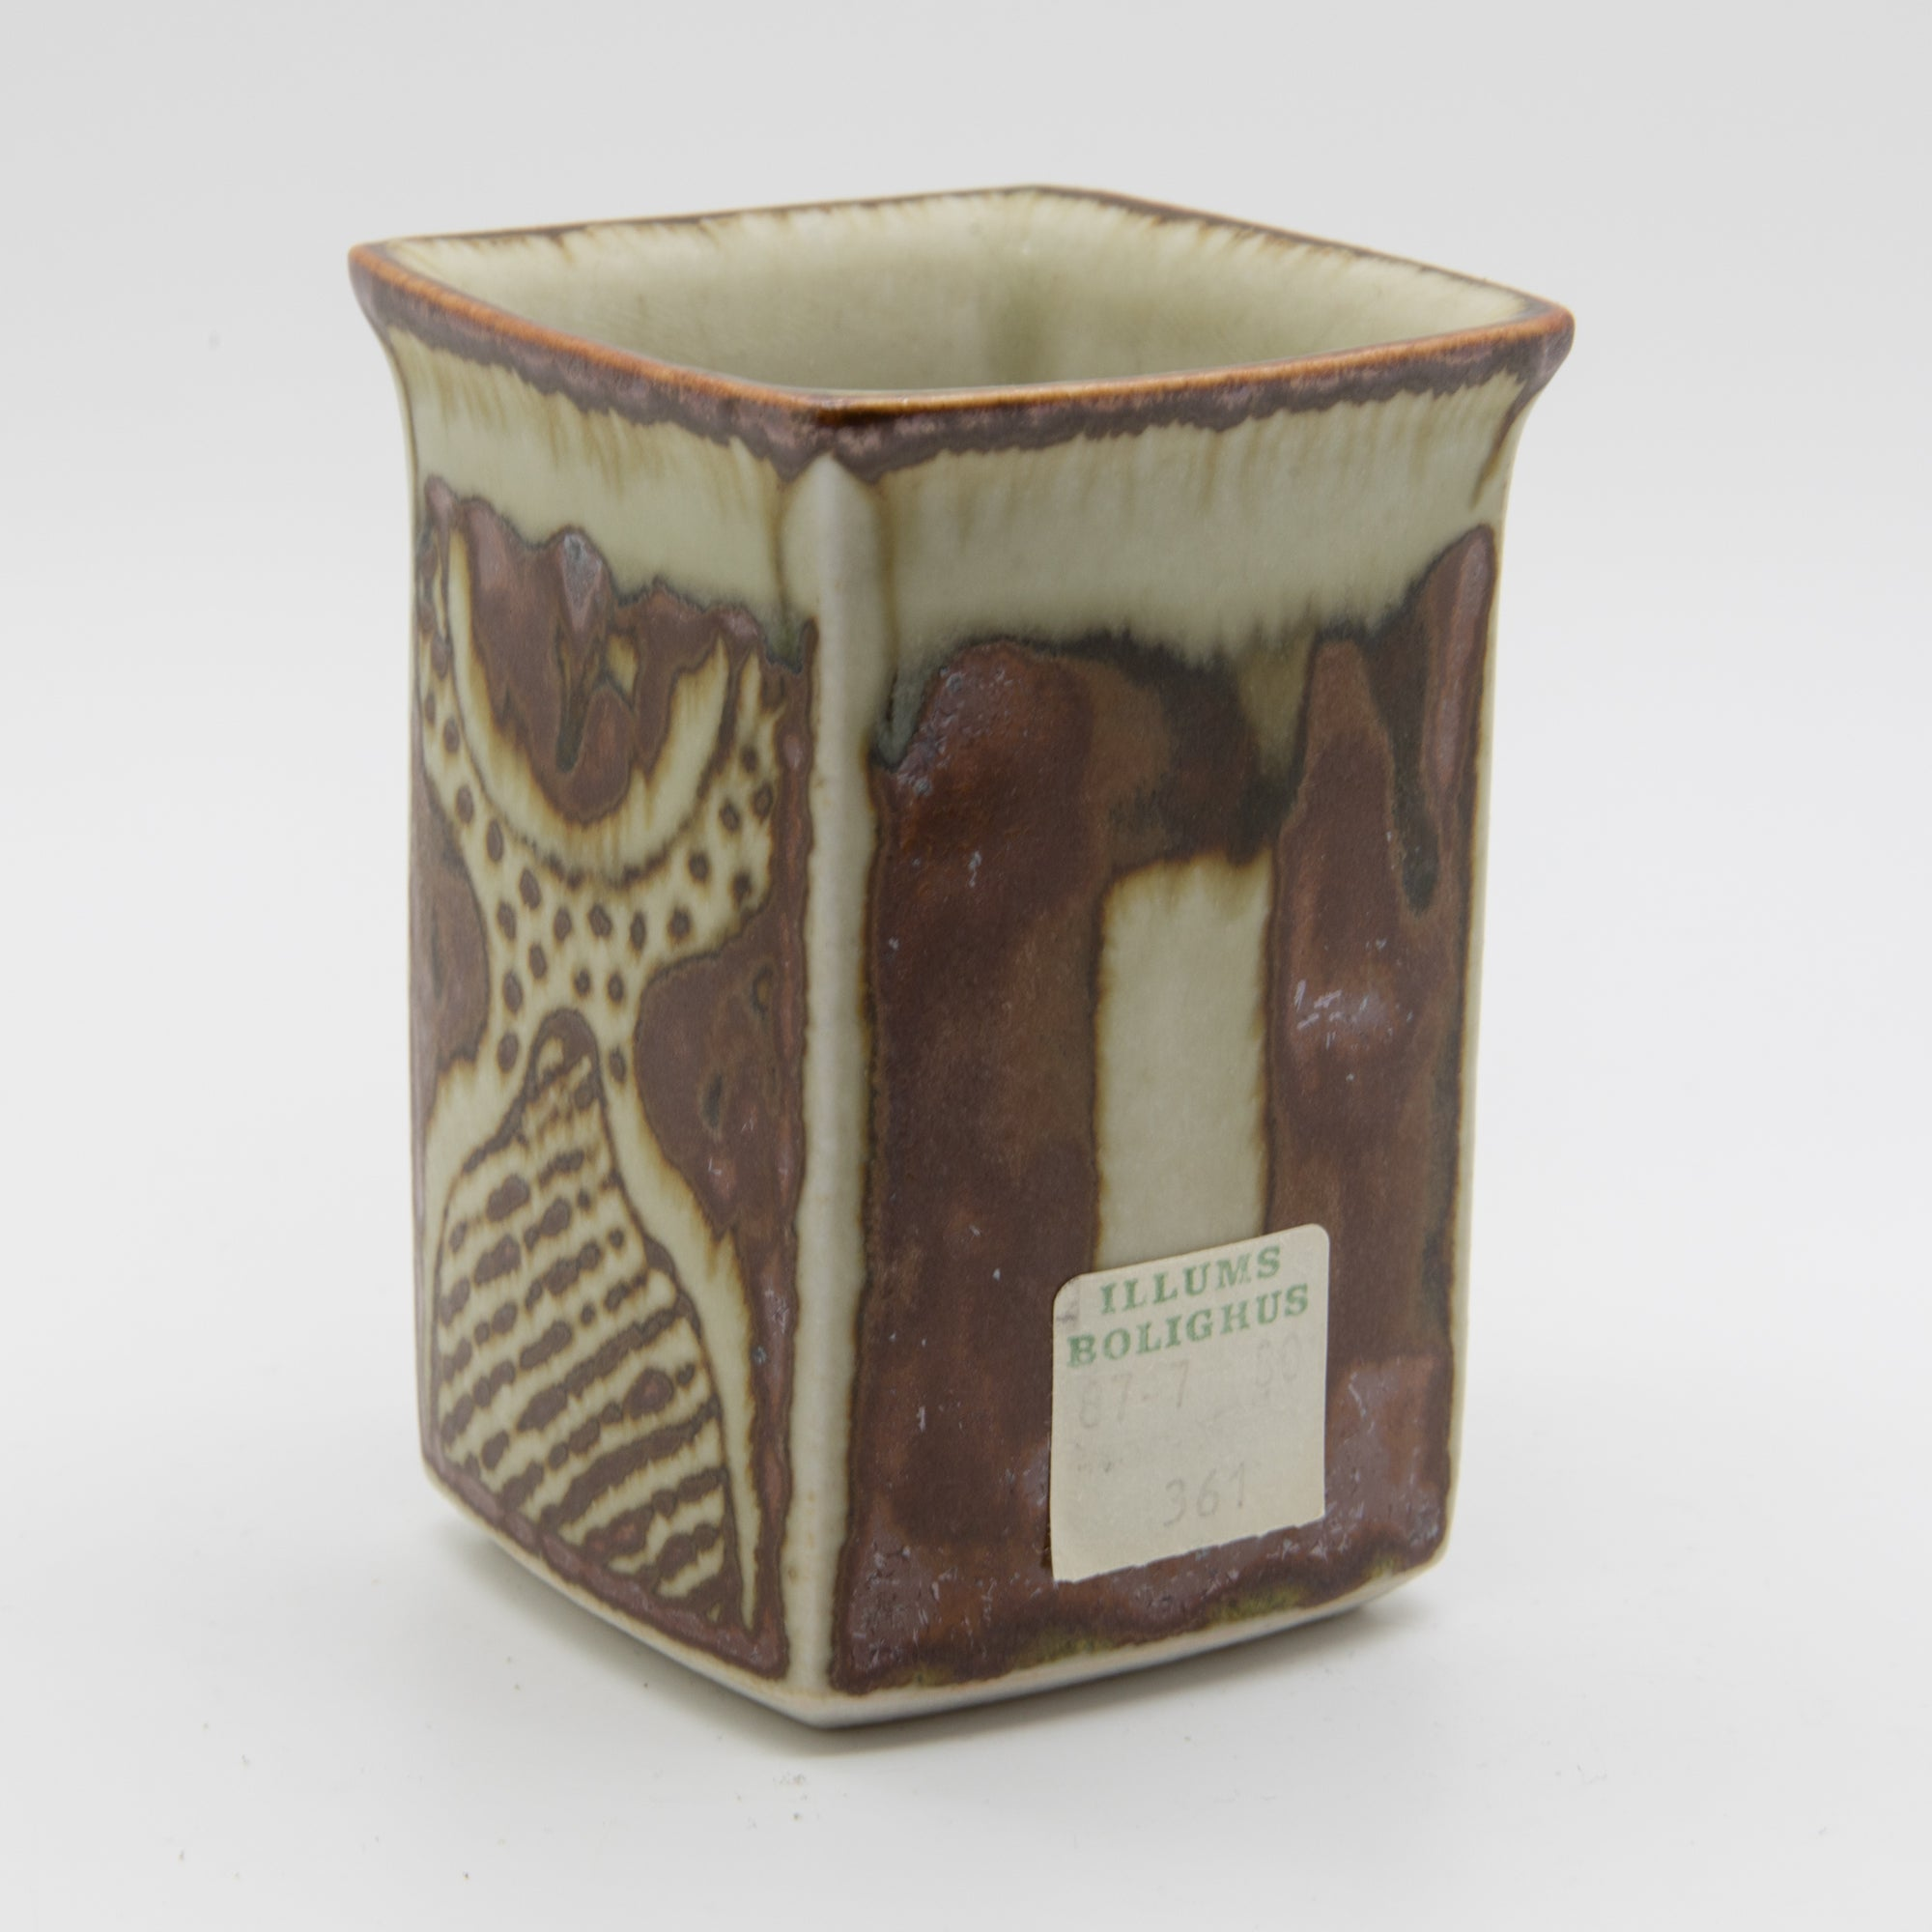 URSULA PRINTZ MOGENSEN Studio Small Organic Decorated Stoneware Vase - Mollaris.com